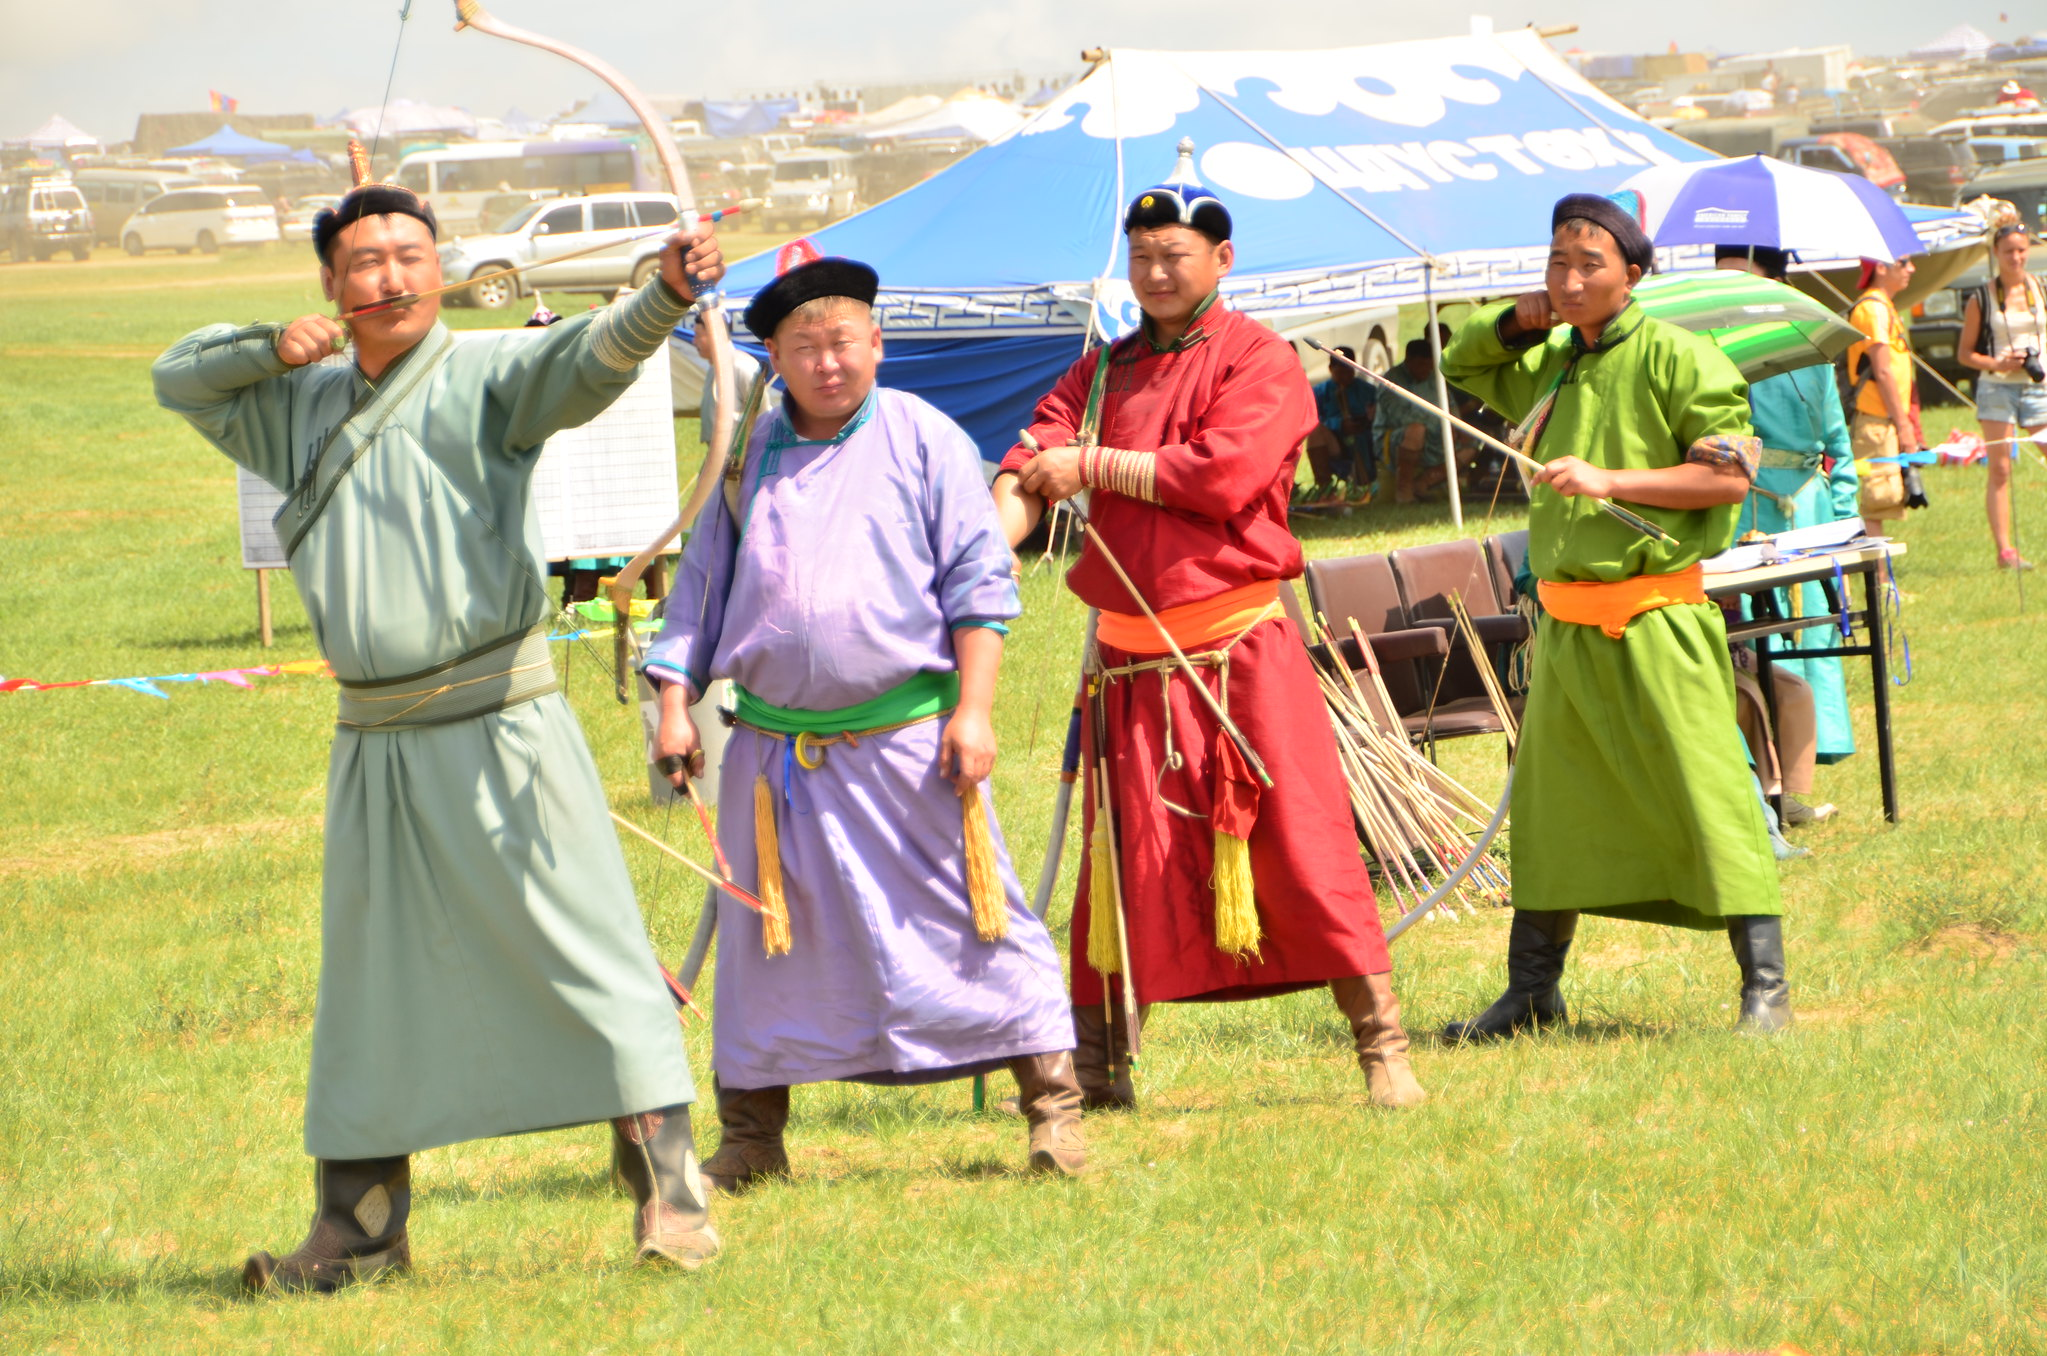 Jewels of Mongolia with Rural Naadam Festival in Khuvsgul lake